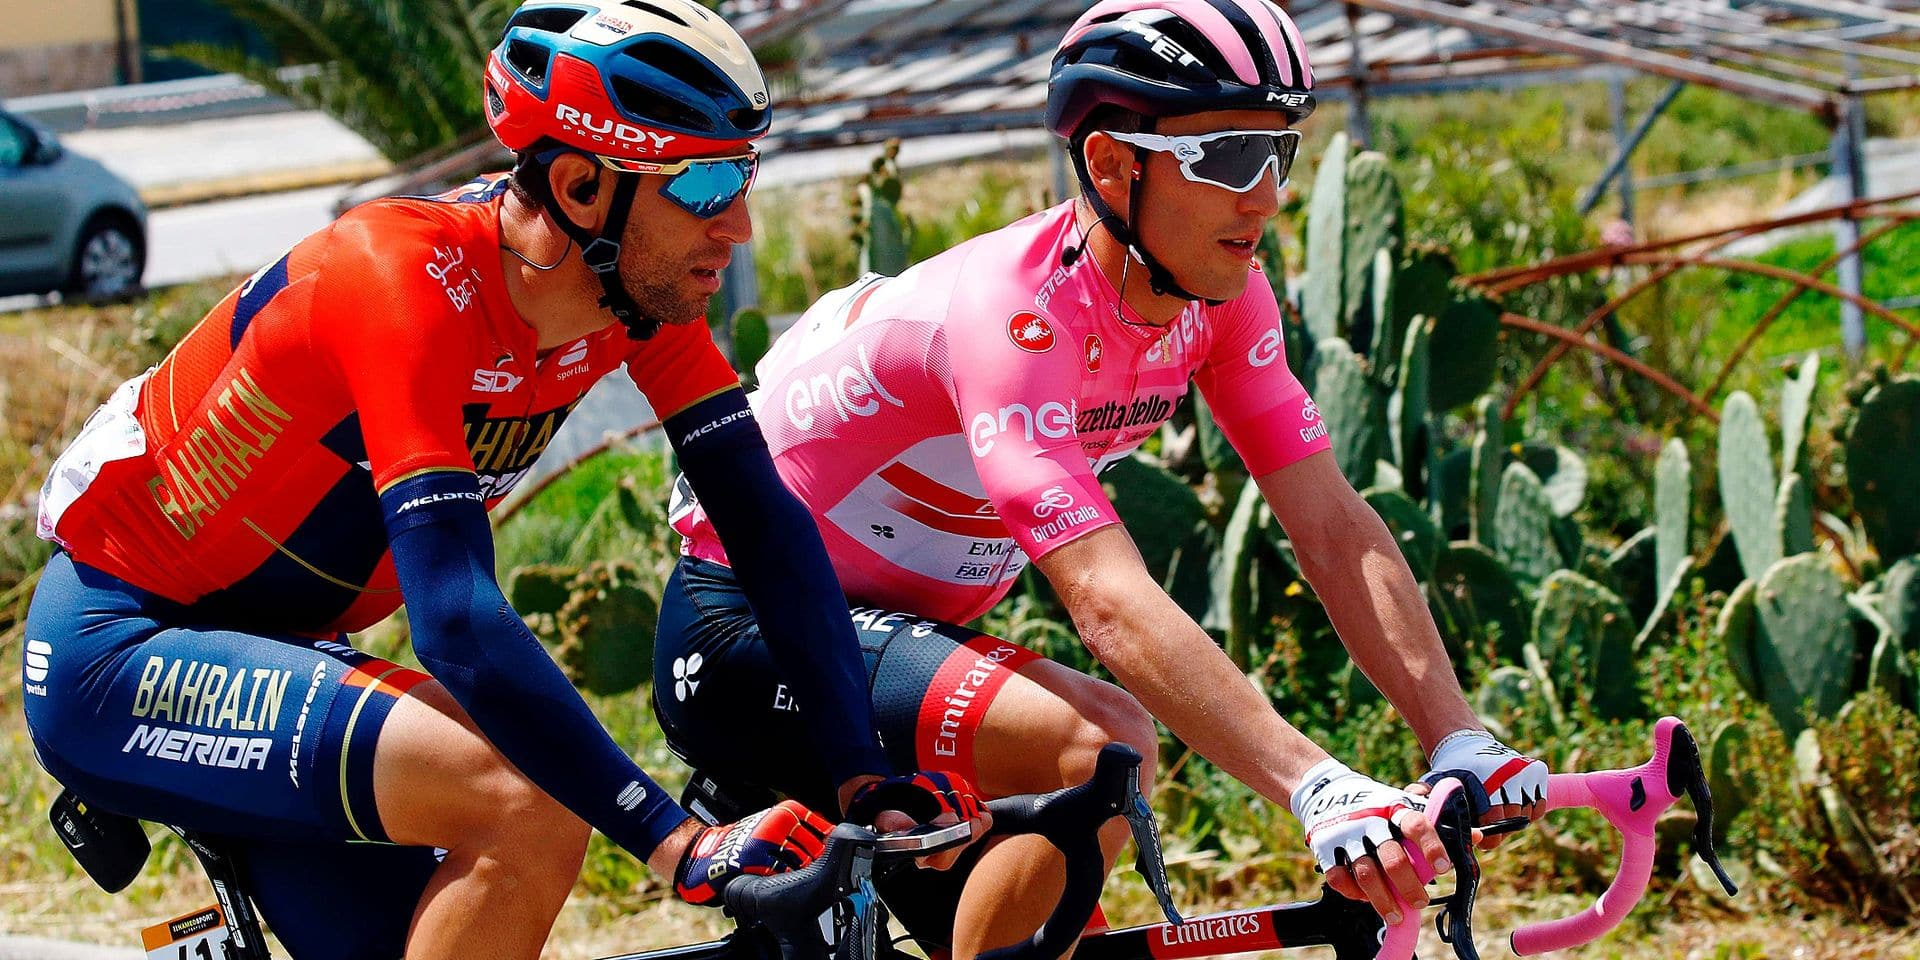 Team Bahrain rider Italy's Vincenzo Nibali (L) rides with Team UAE Emirates rider Italy's Valerio Conti, overall leader and Pink Jersey holder, as they take part in stage eight of the 102nd Giro d'Italia - Tour of Italy - cycle race, 239kms from Tortoreto Lido to Pesaro on May 18, 2019. (Photo by Luk BENIES / AFP)